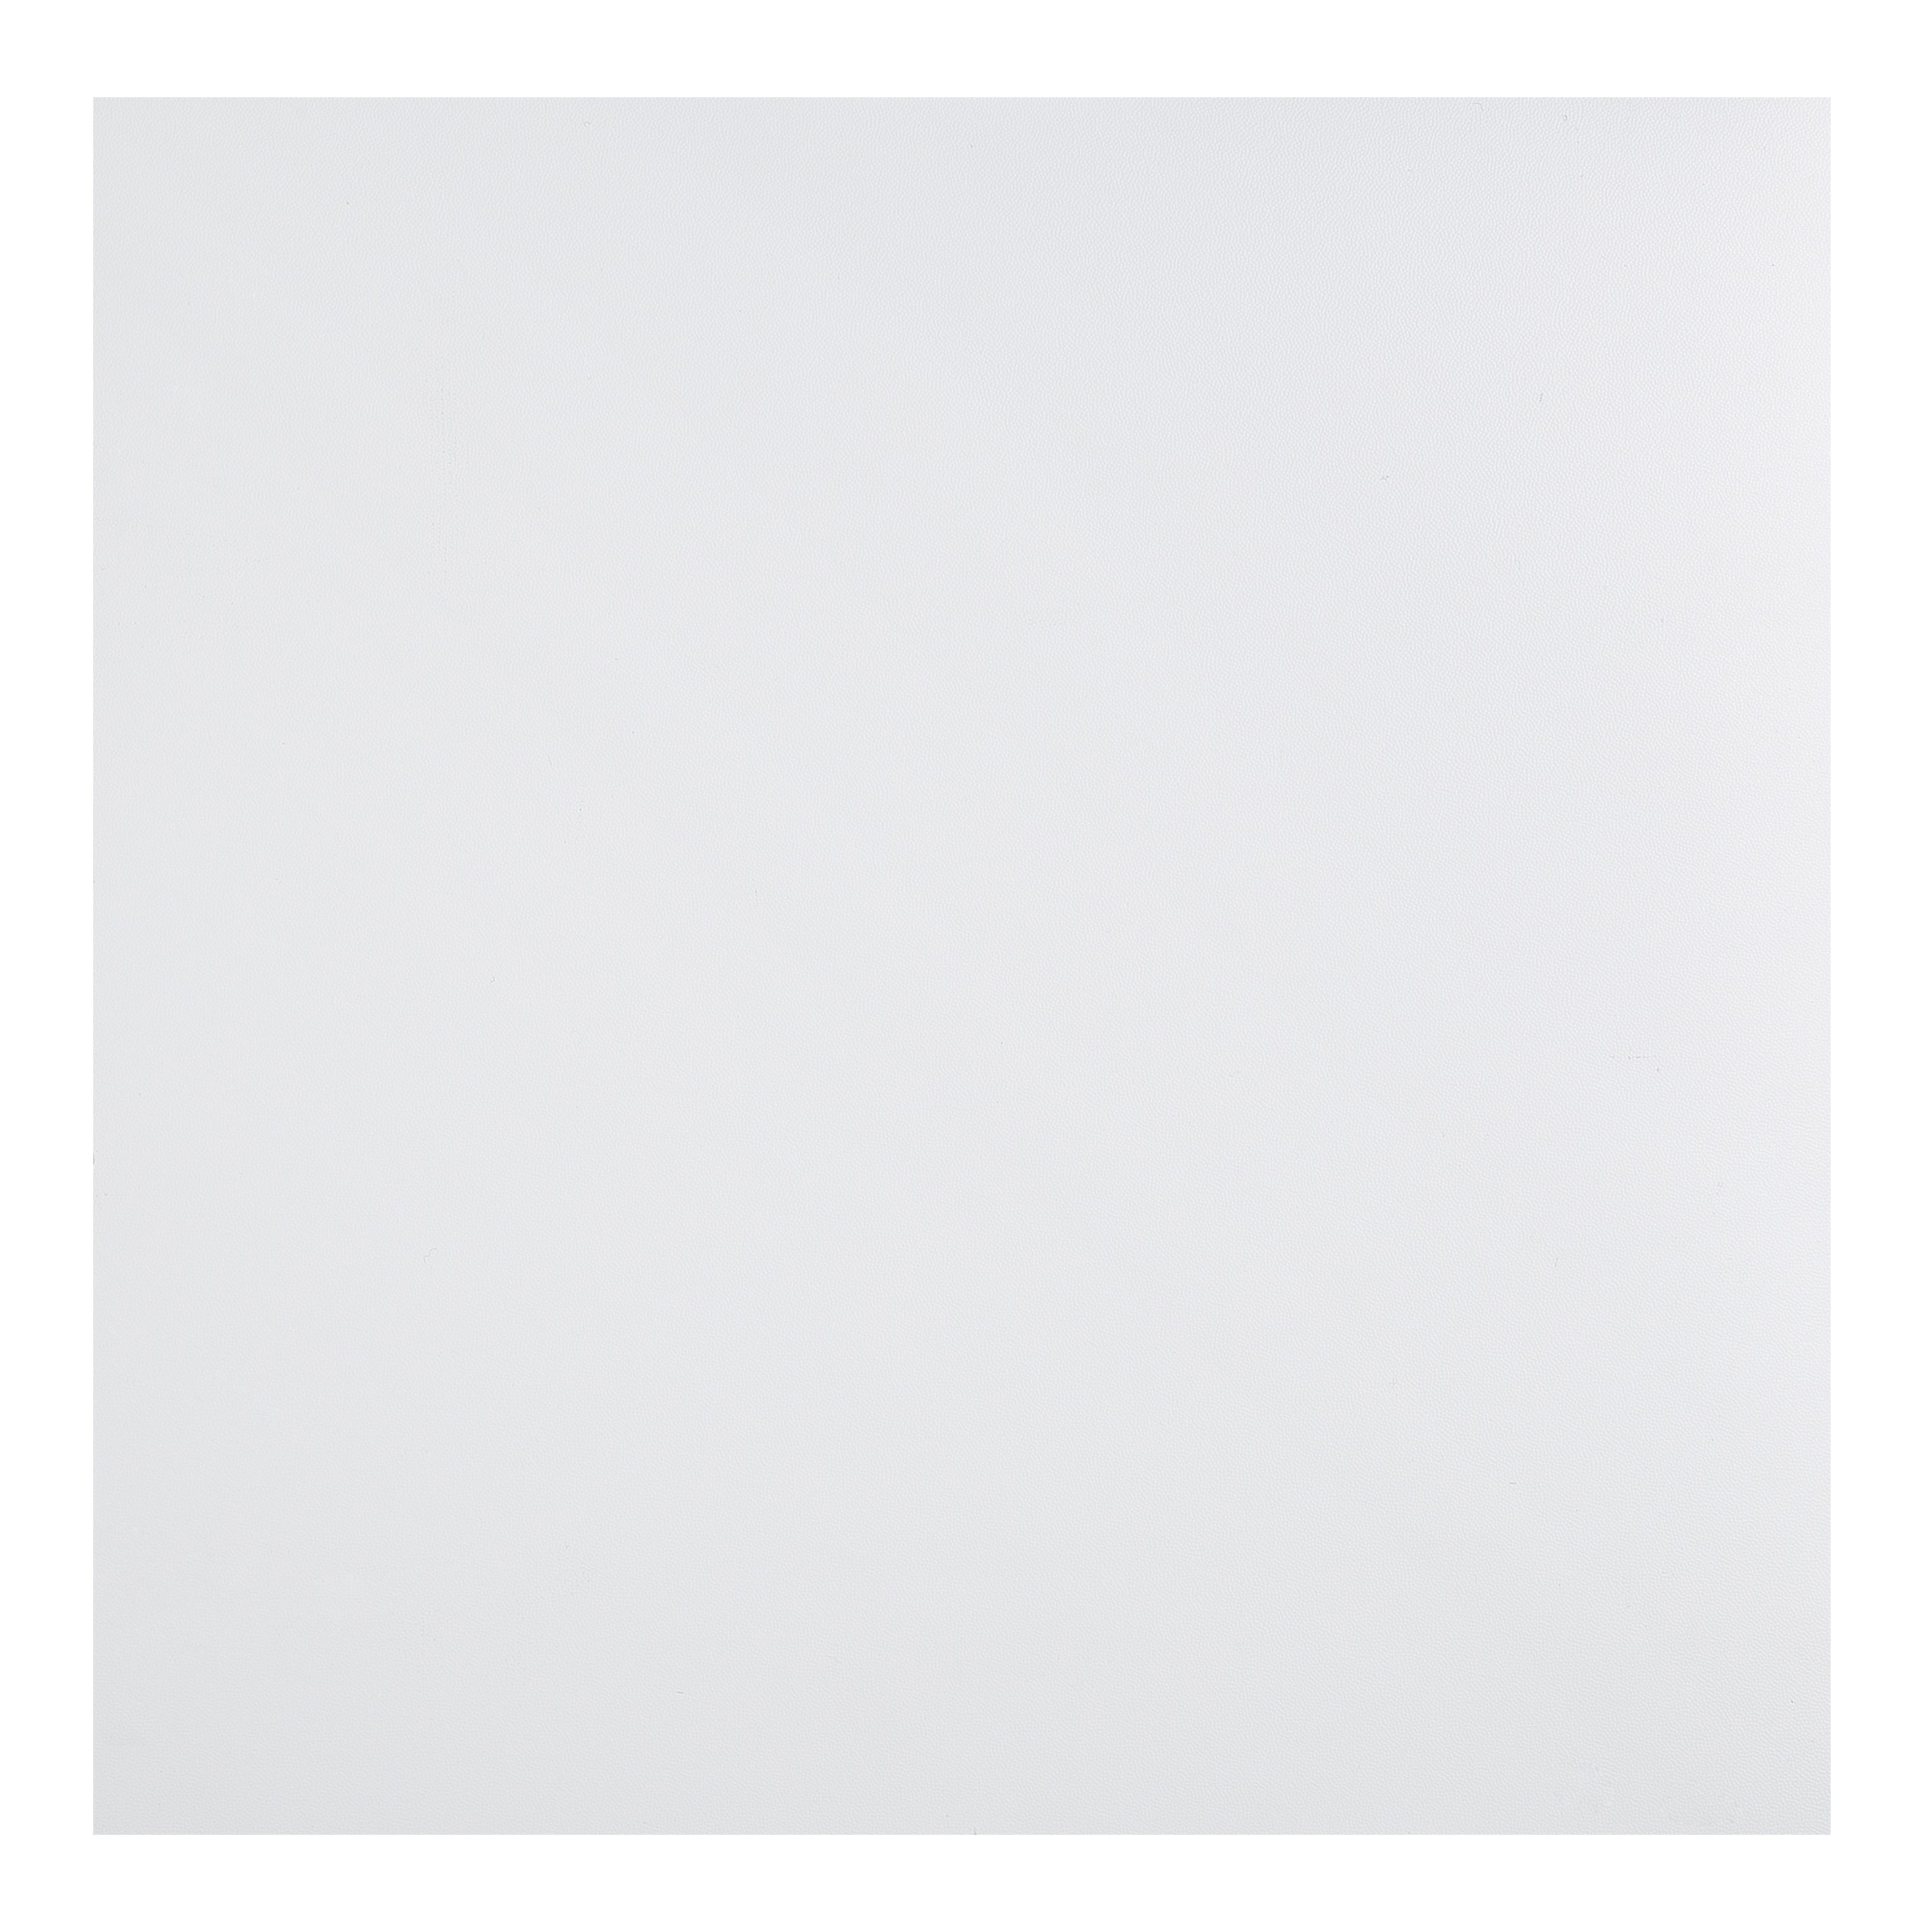 B&Q White Marble Effect Self Adhesive Vinyl Tile 1.02m² Pack